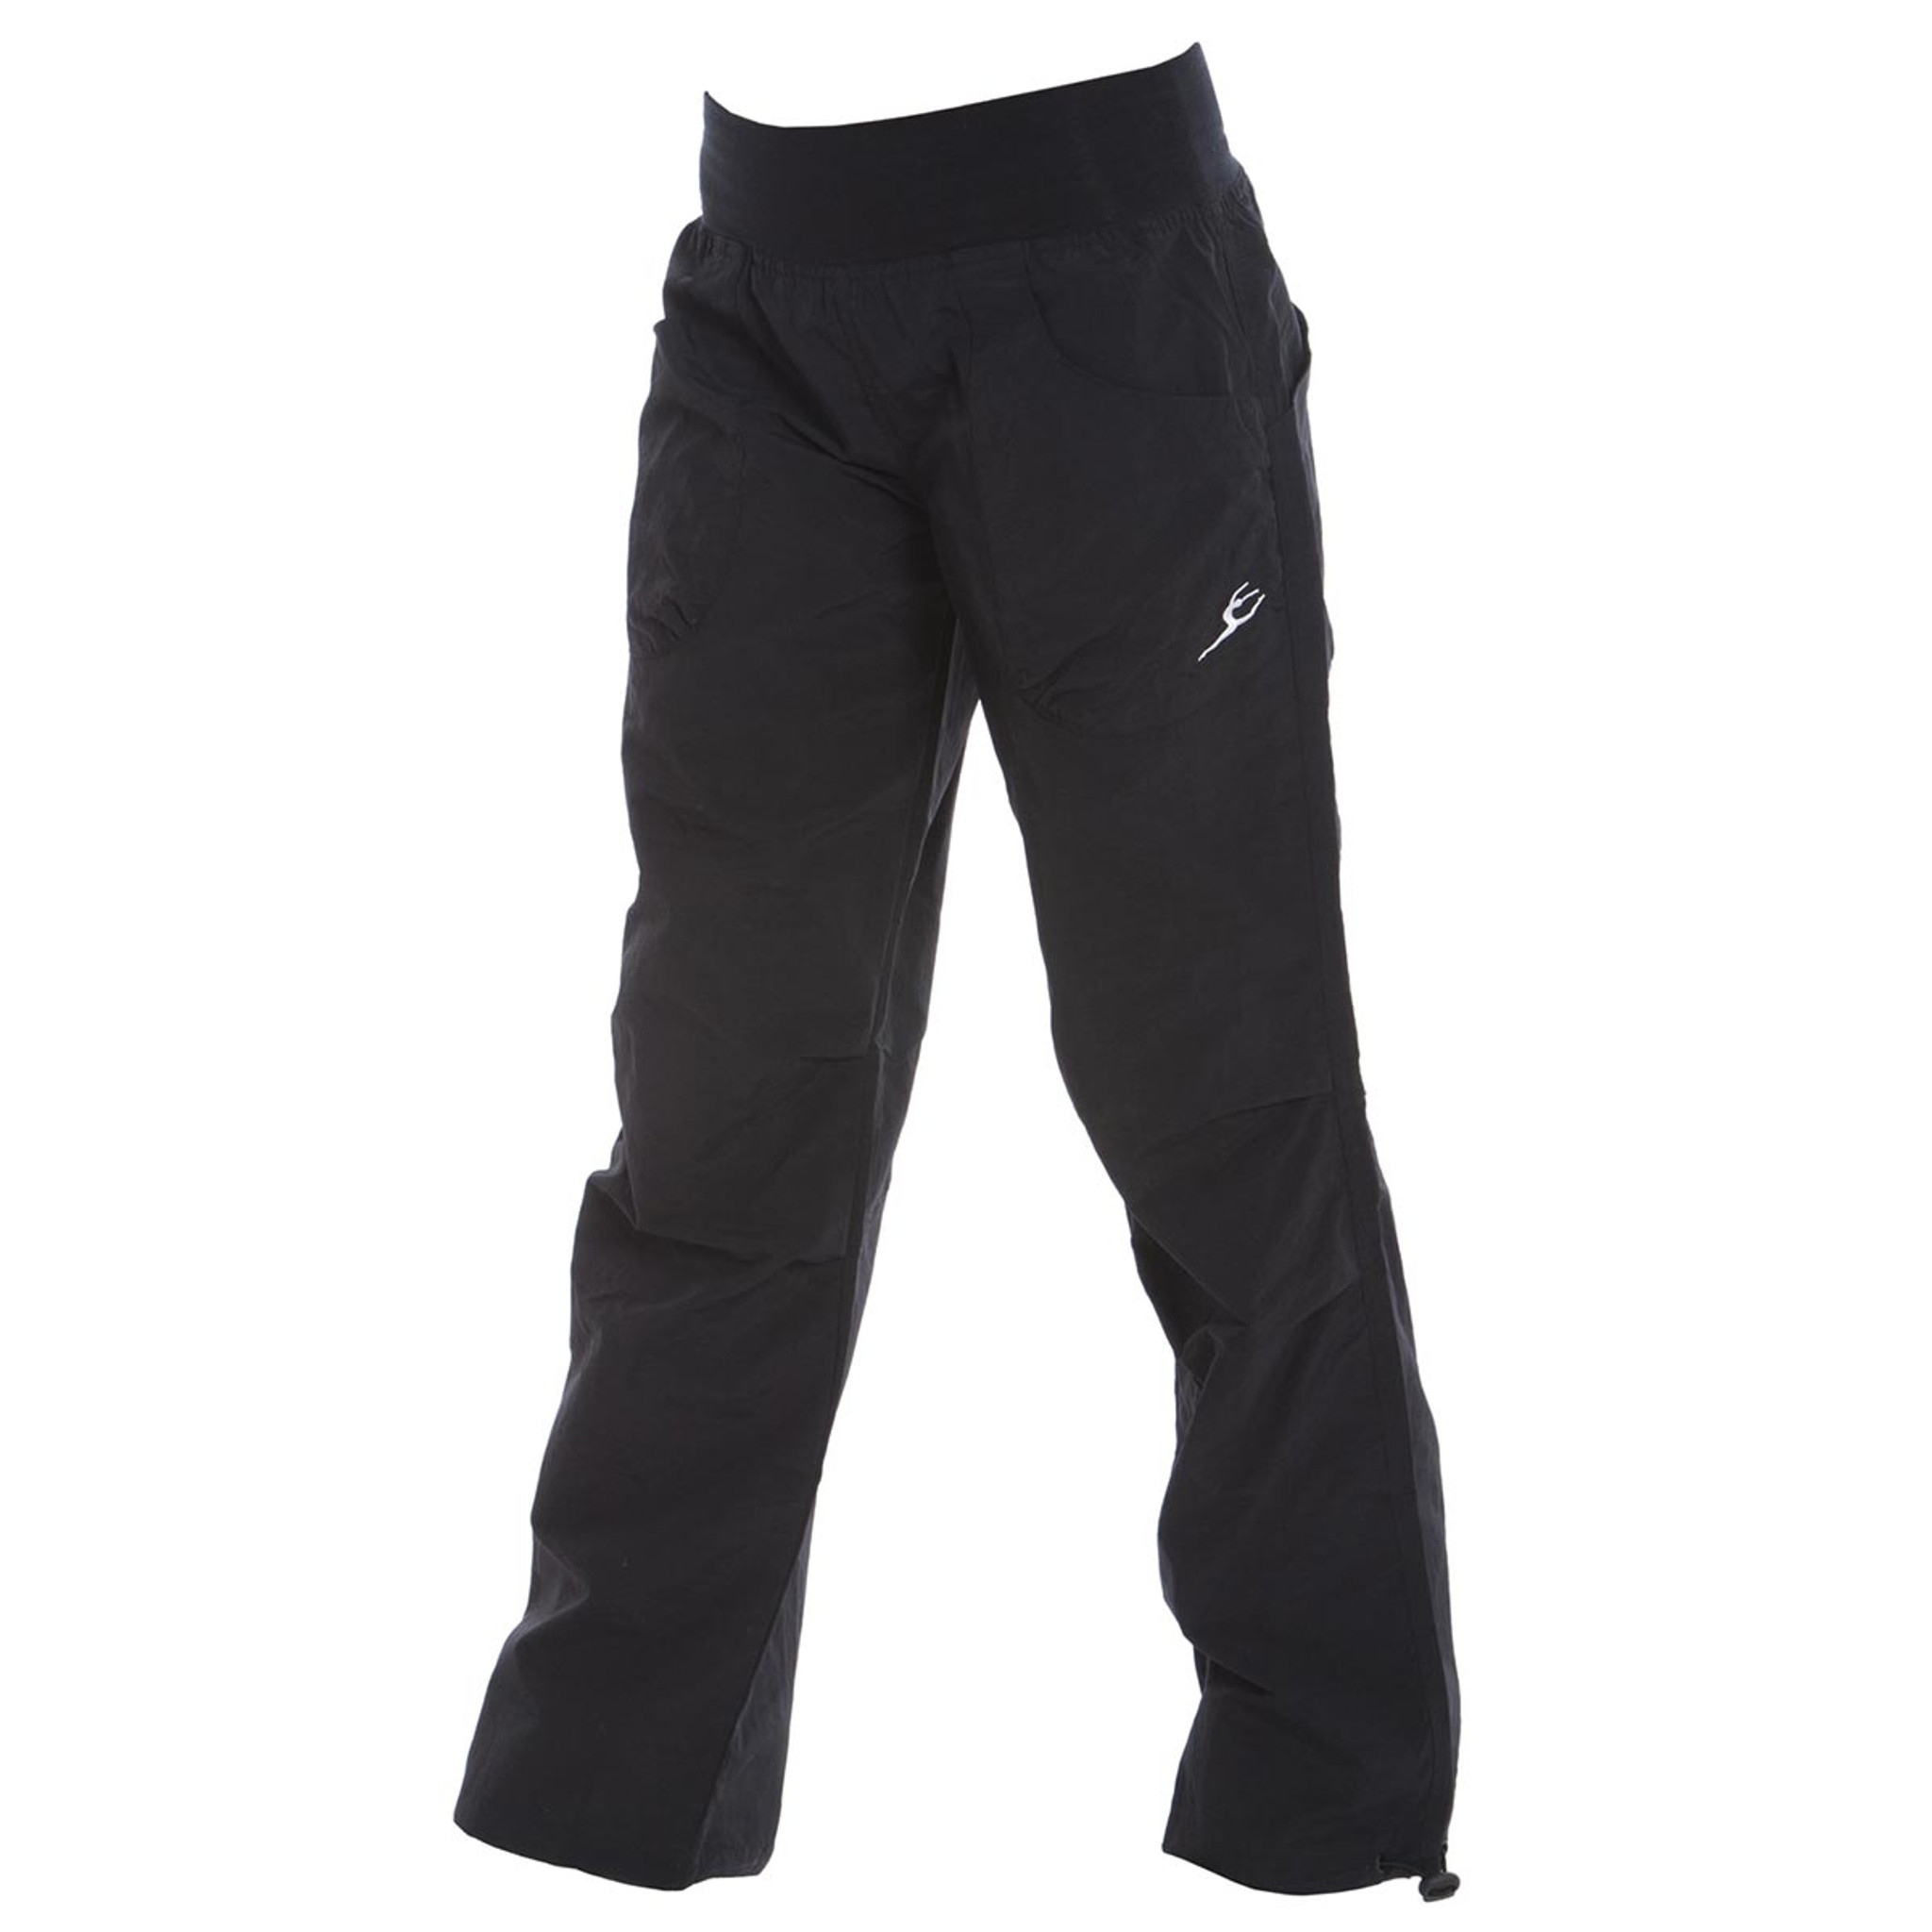 Energetiks Groove Pants - Adult's Dance Pants